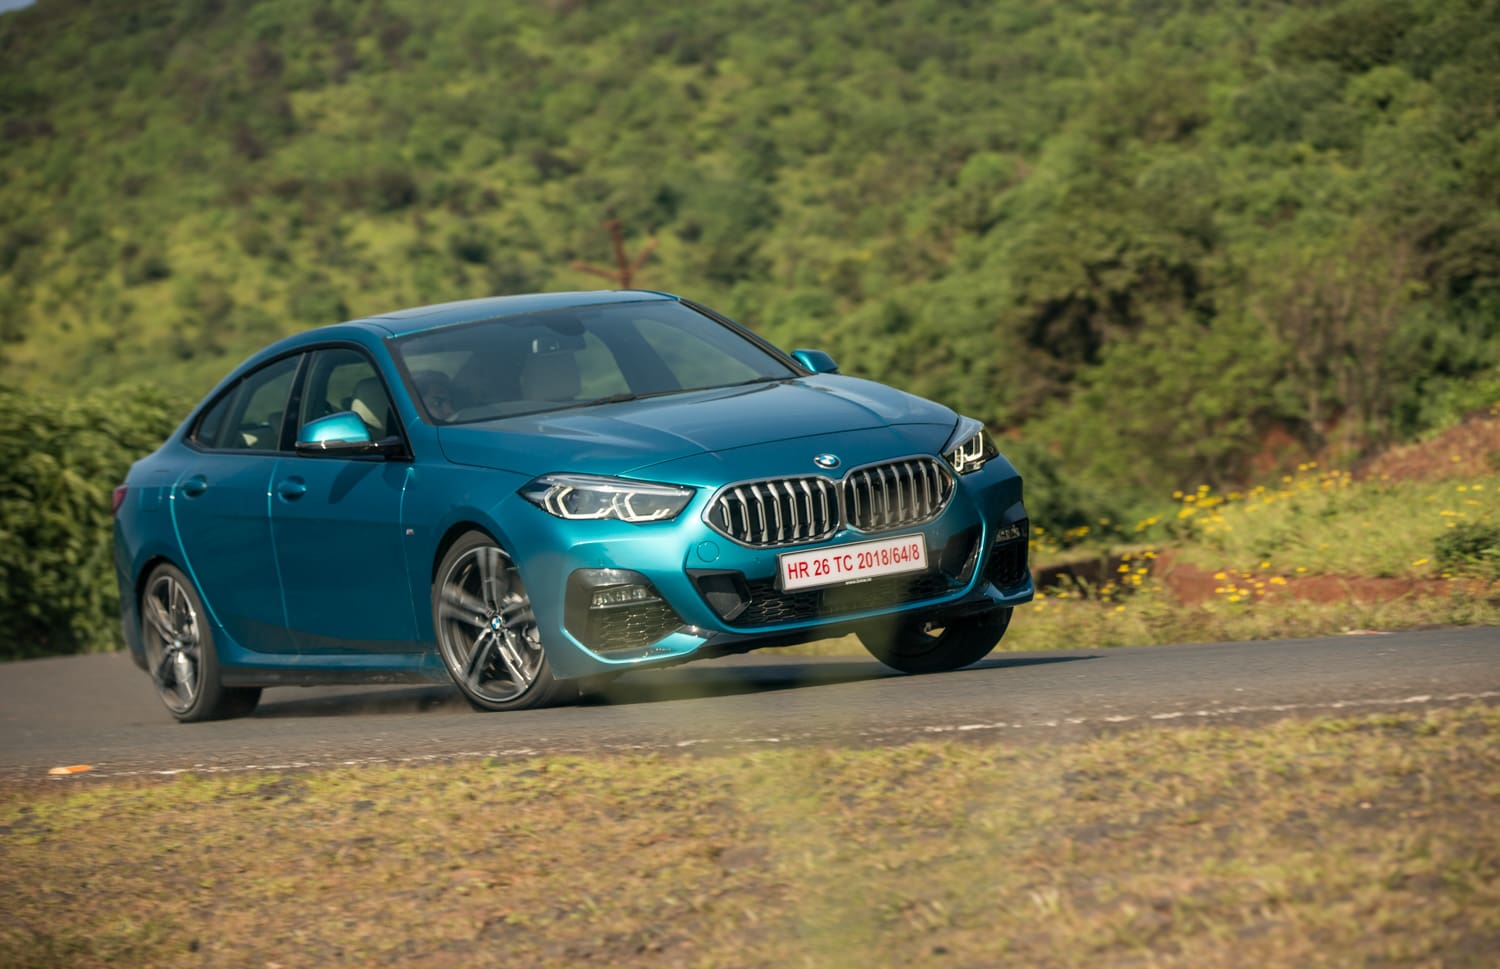 BMW 2 Series Gran Coupe: First Drive Review